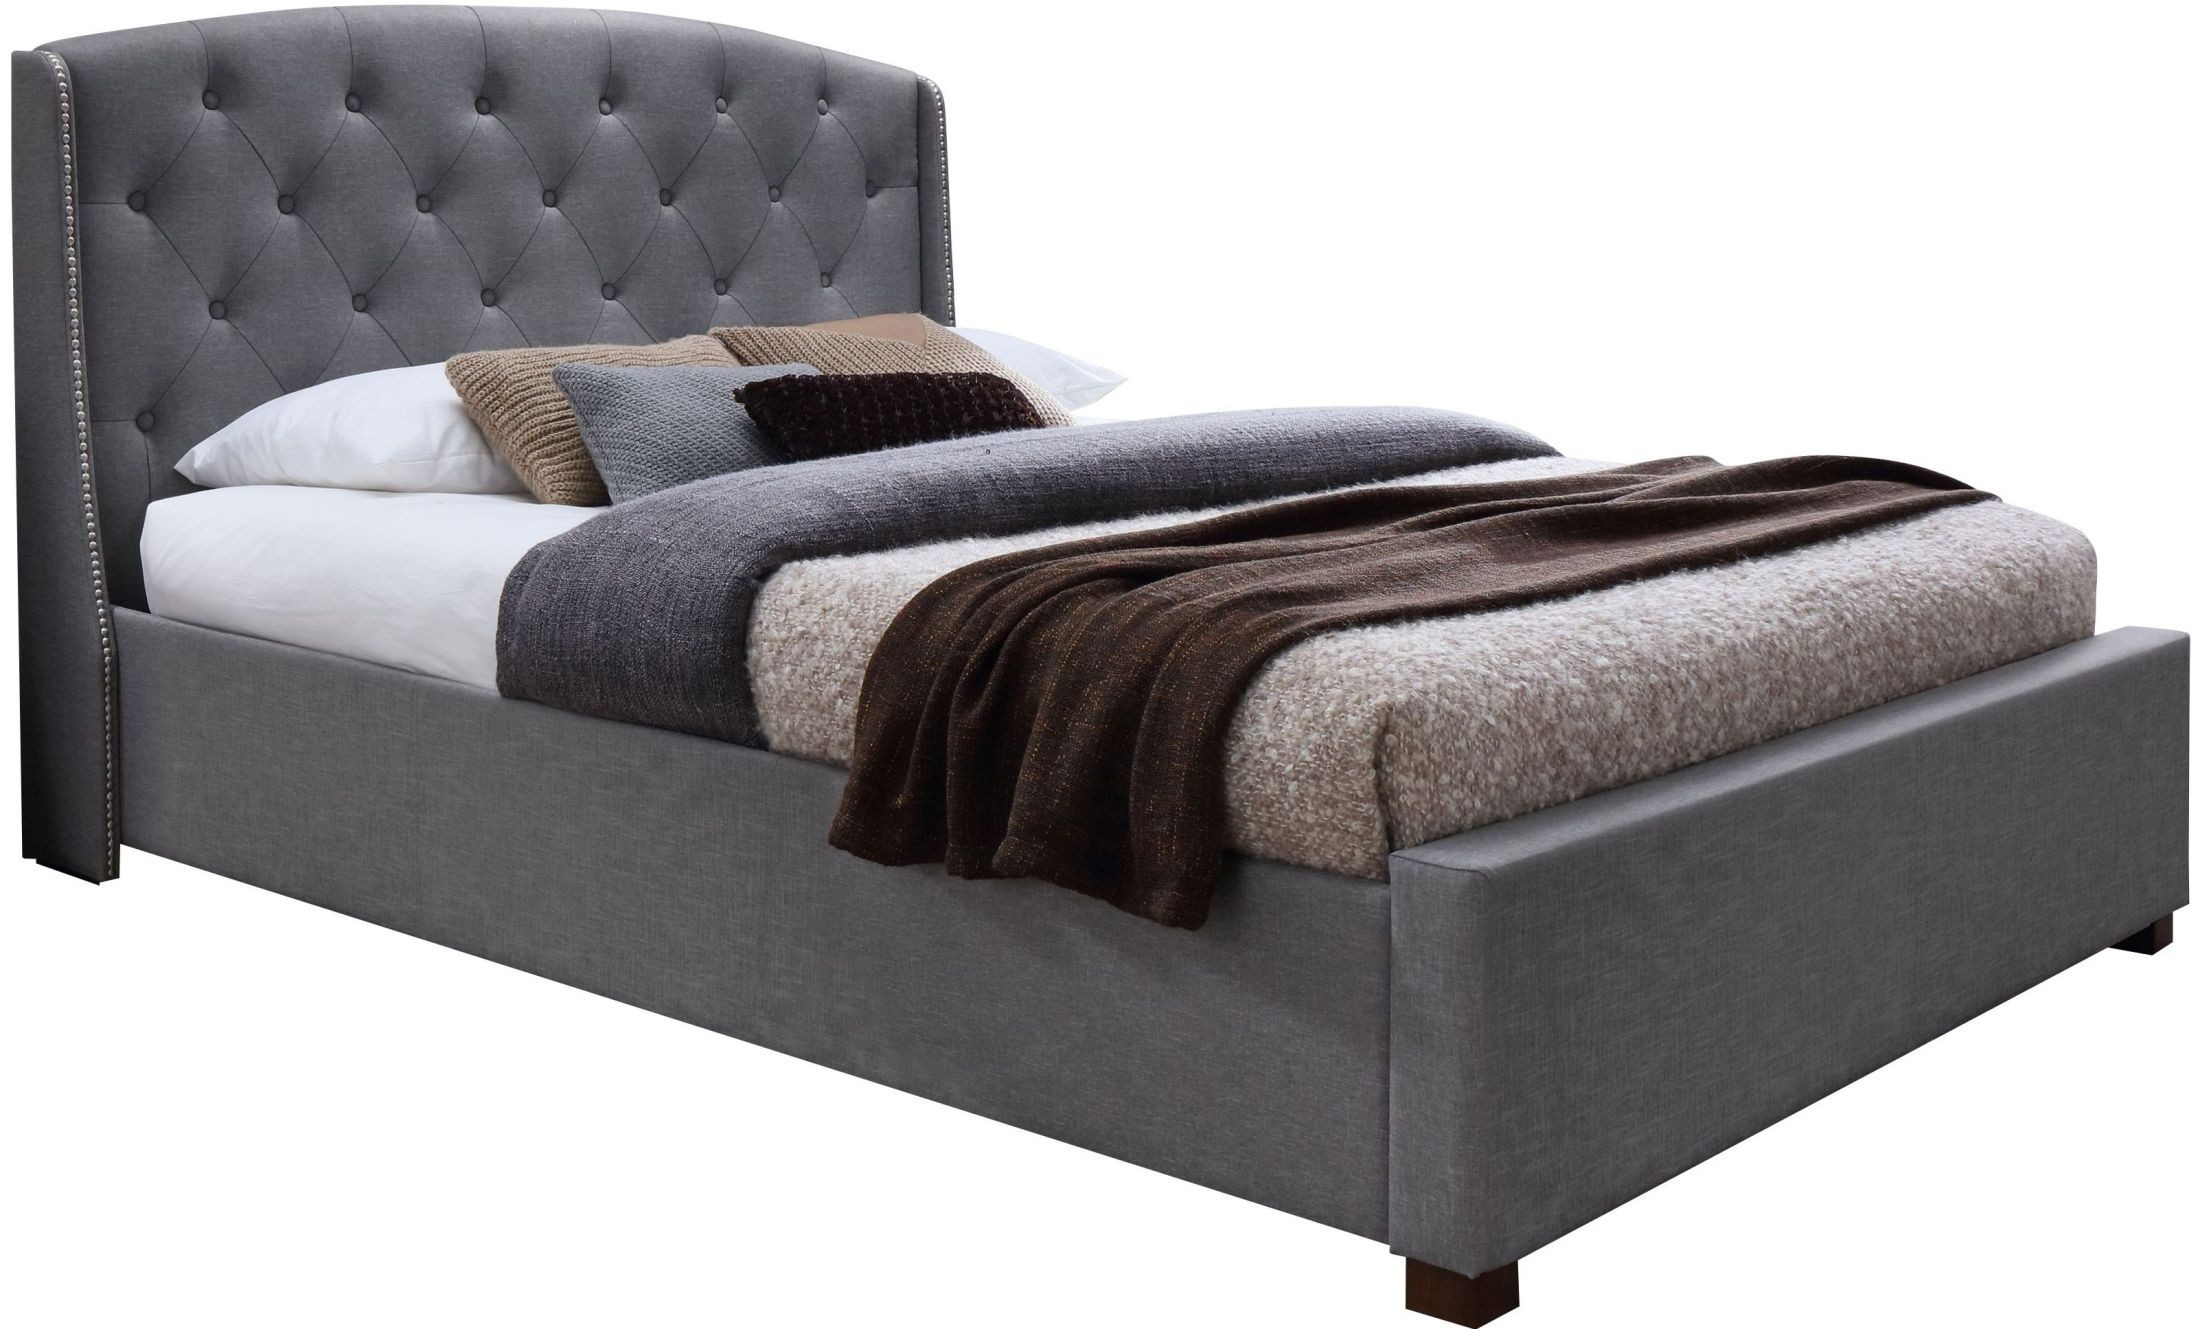 Iris Gray King Upholstered Platform Bed From Jnm Coleman